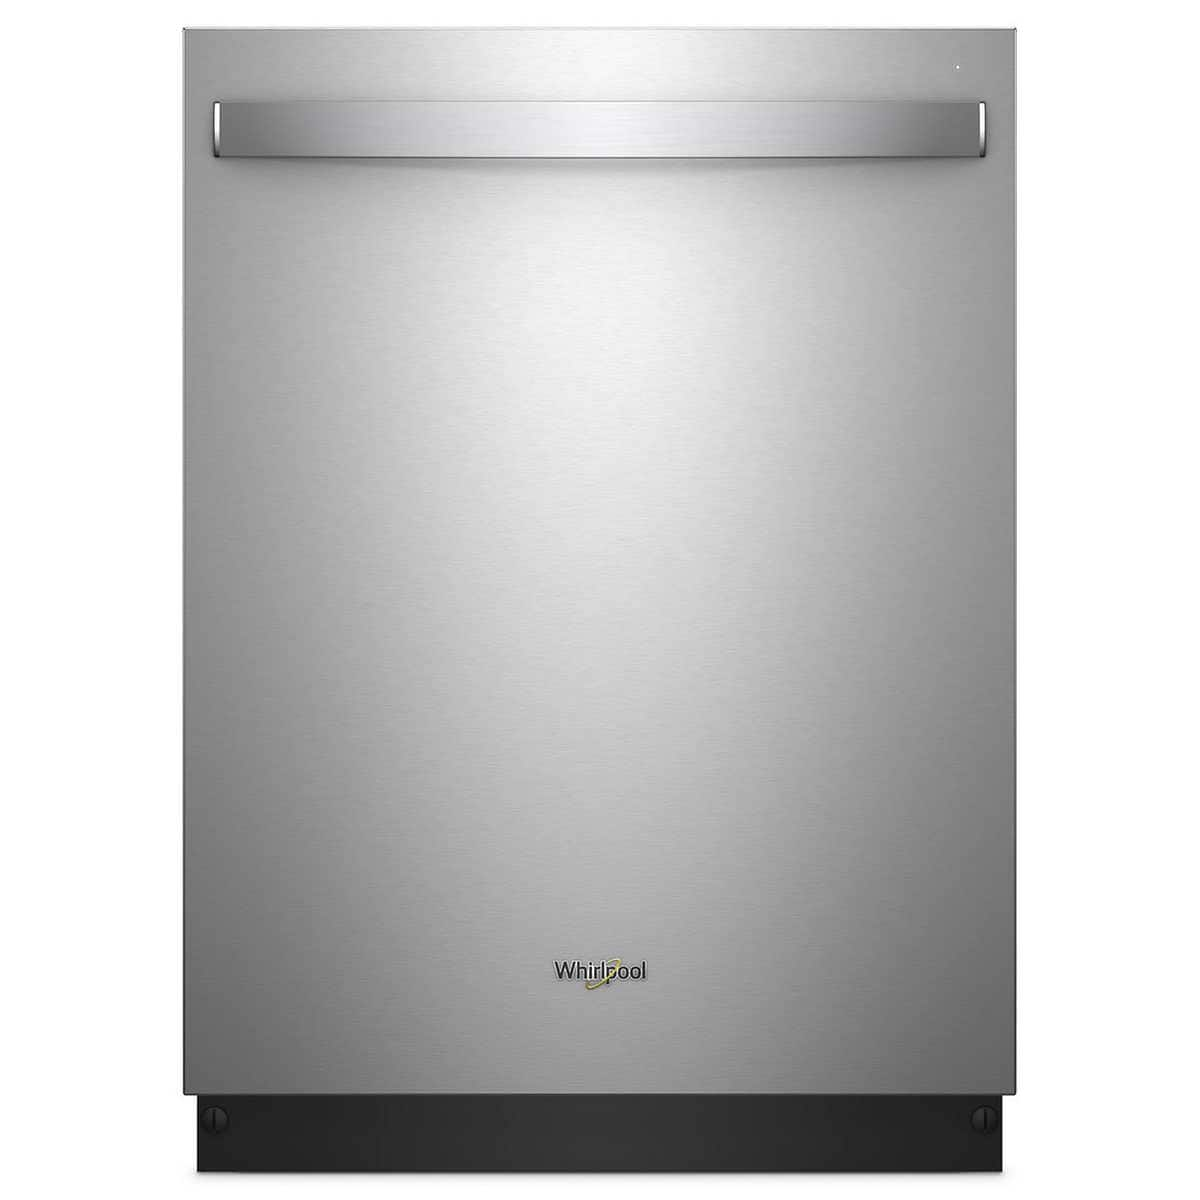 Costco Members: Whirlpool Stainless Steel Dishwasher WDT730PAHZ w/ In-Home Delivery/Parts/Haul Away $399.99